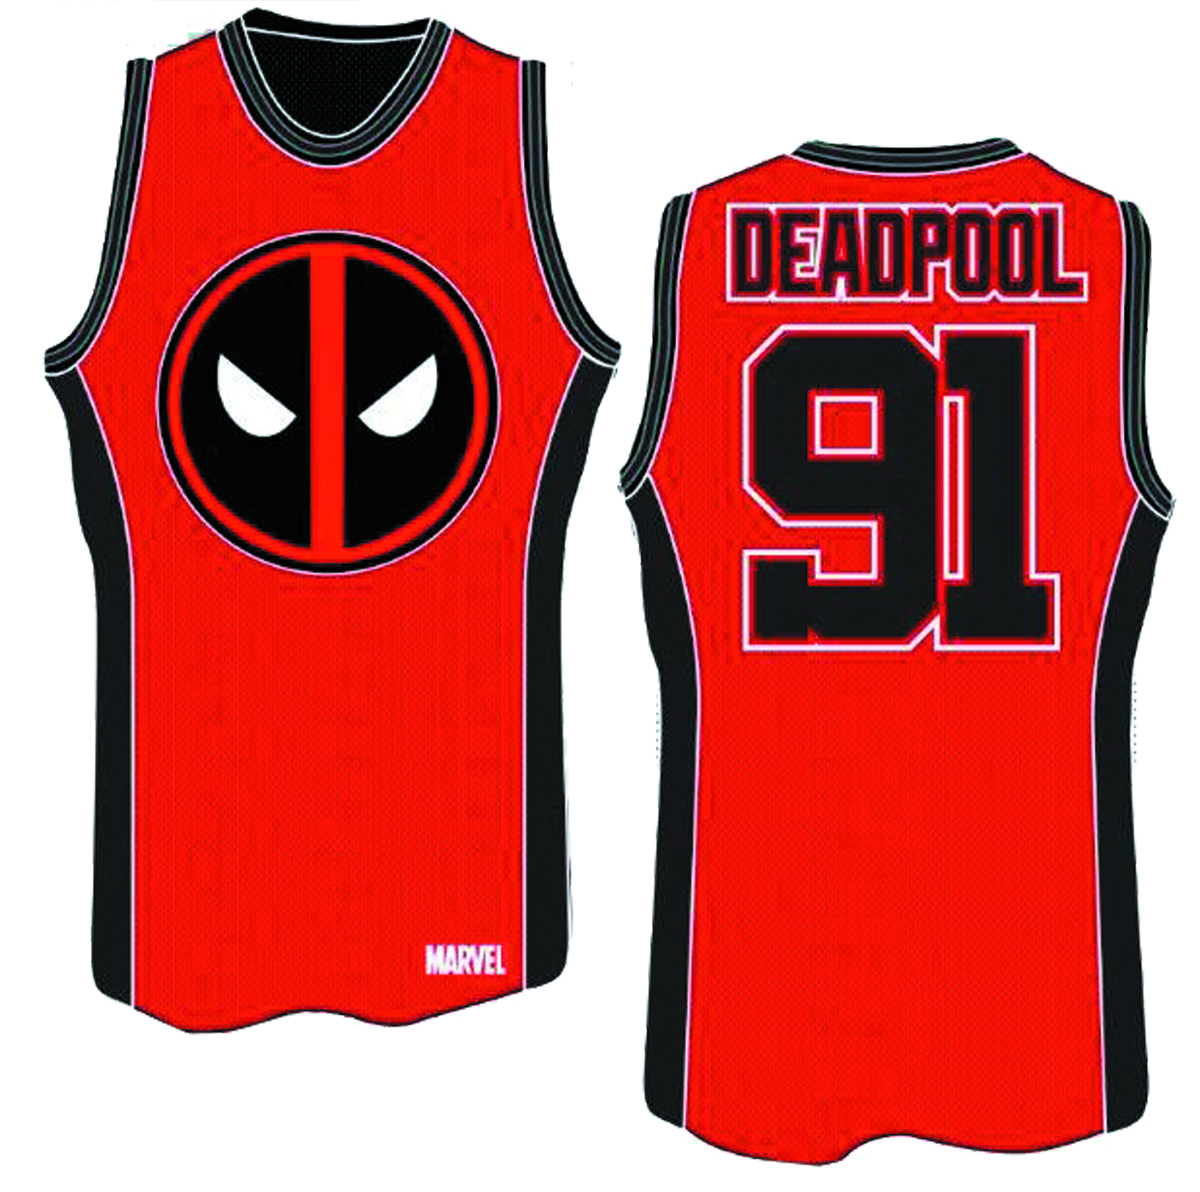 f28ea4fca39 APR141803 - DEADPOOL WADE BASKETBALL JERSEY MED - Previews World